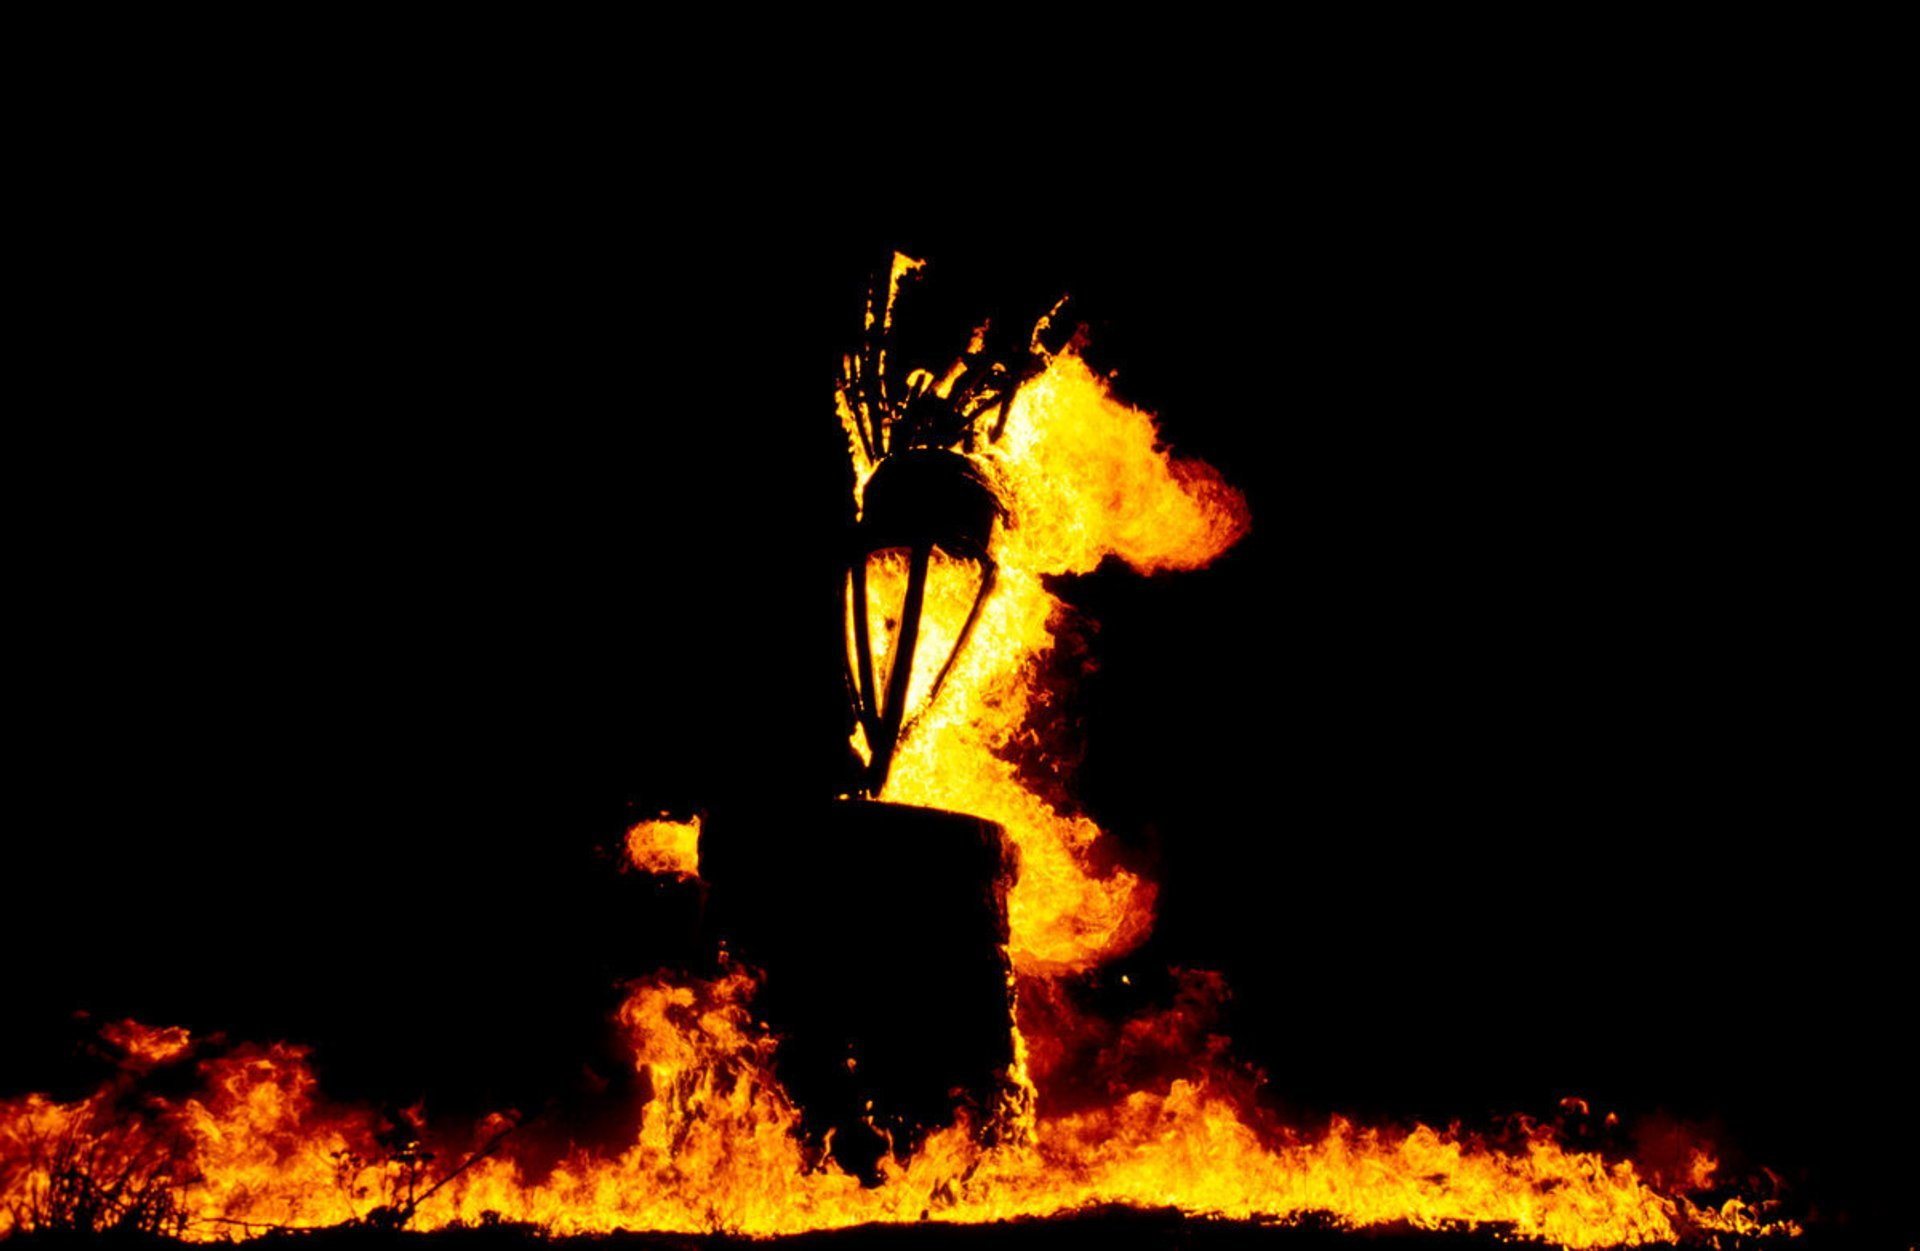 Burning of the Clavie in Scotland - Best Season 2020